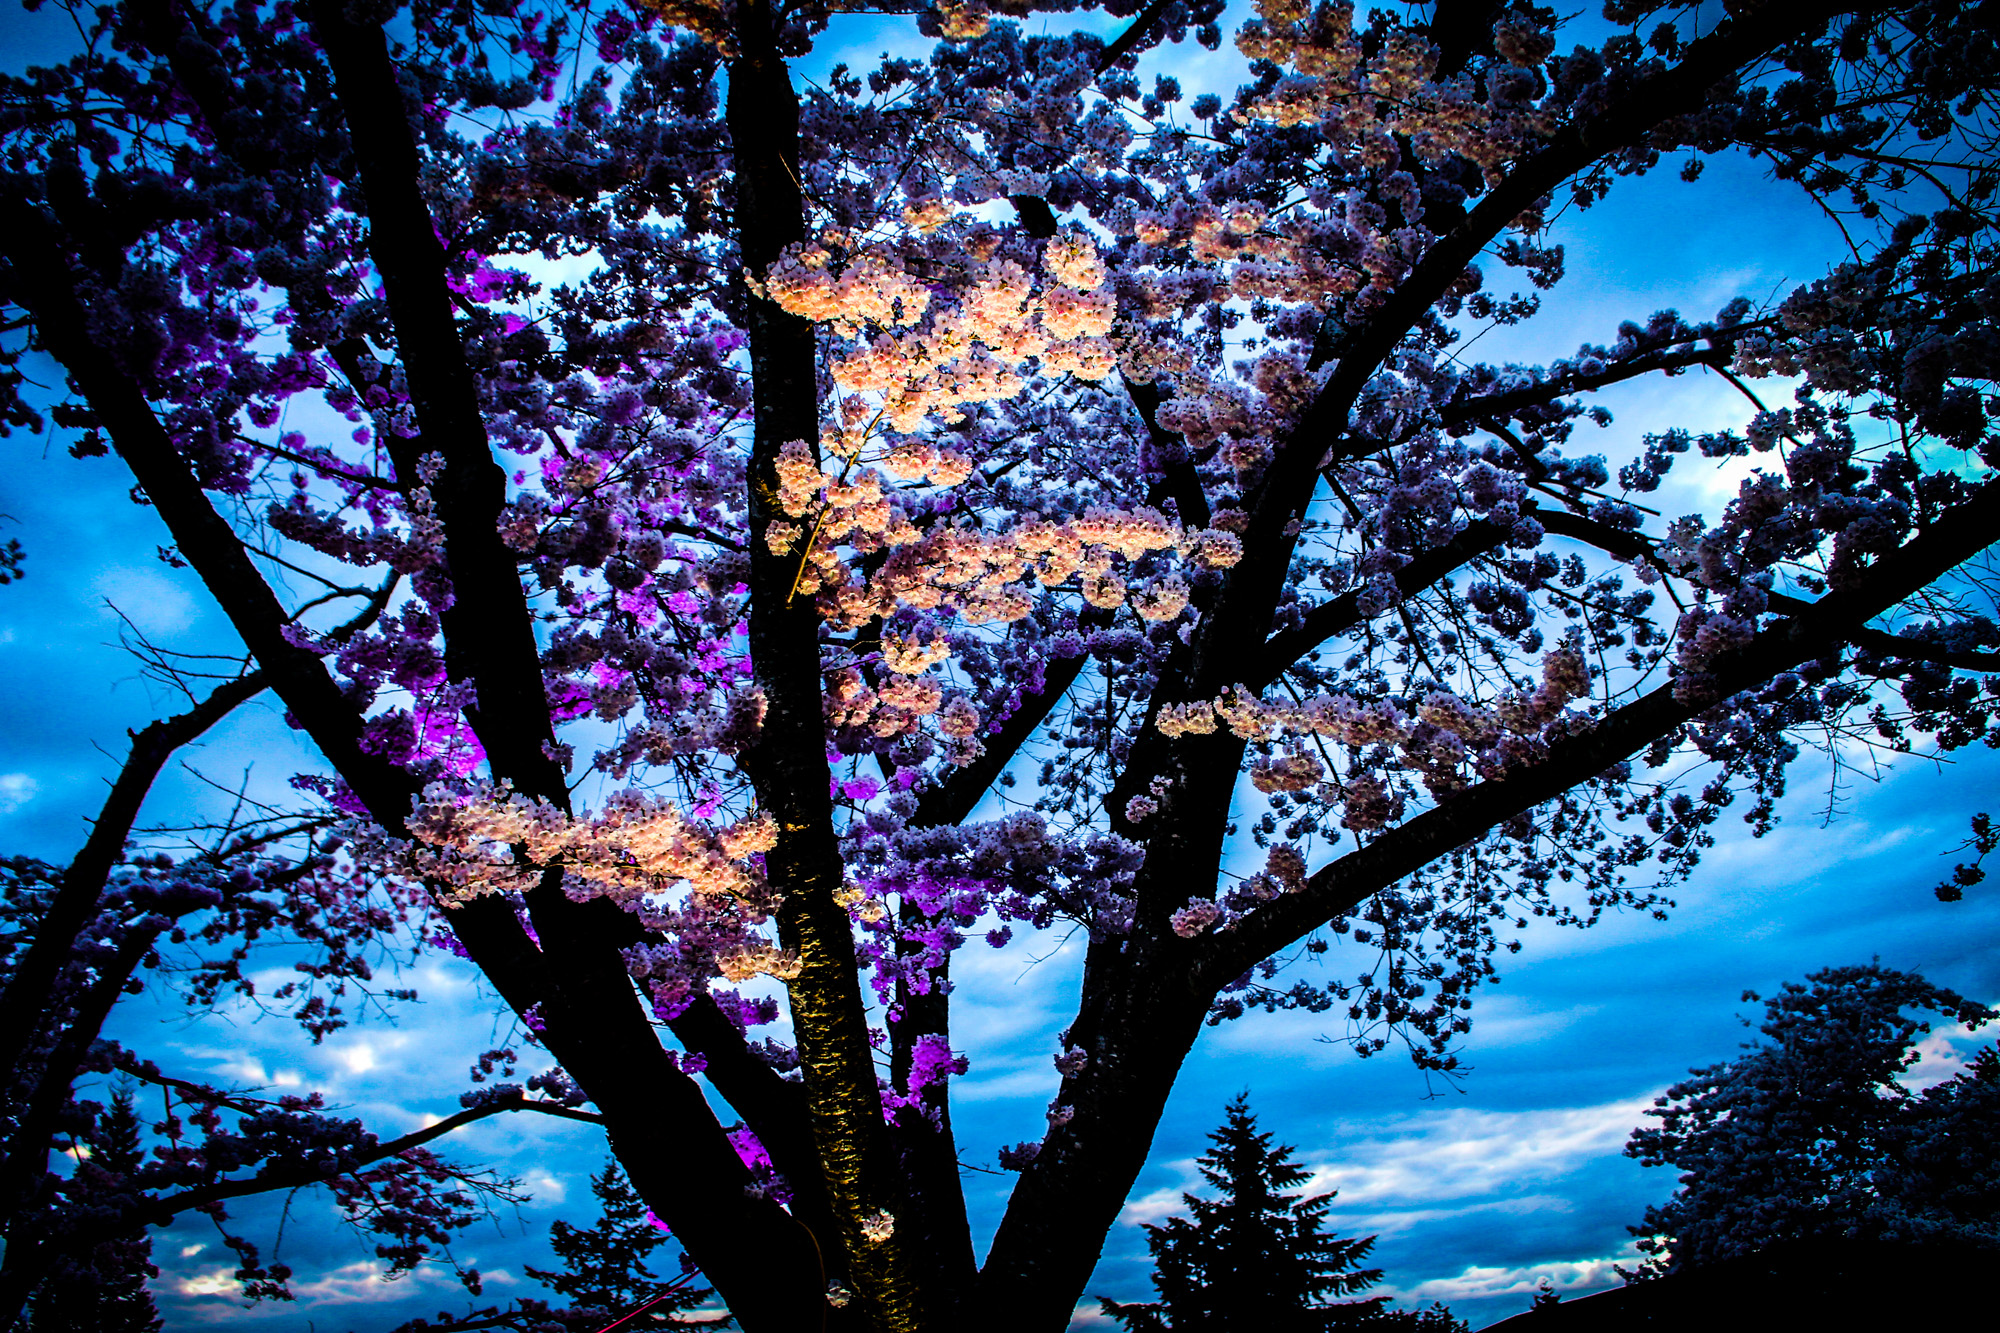 Spring Lights Illumination photo by Hannah Munday